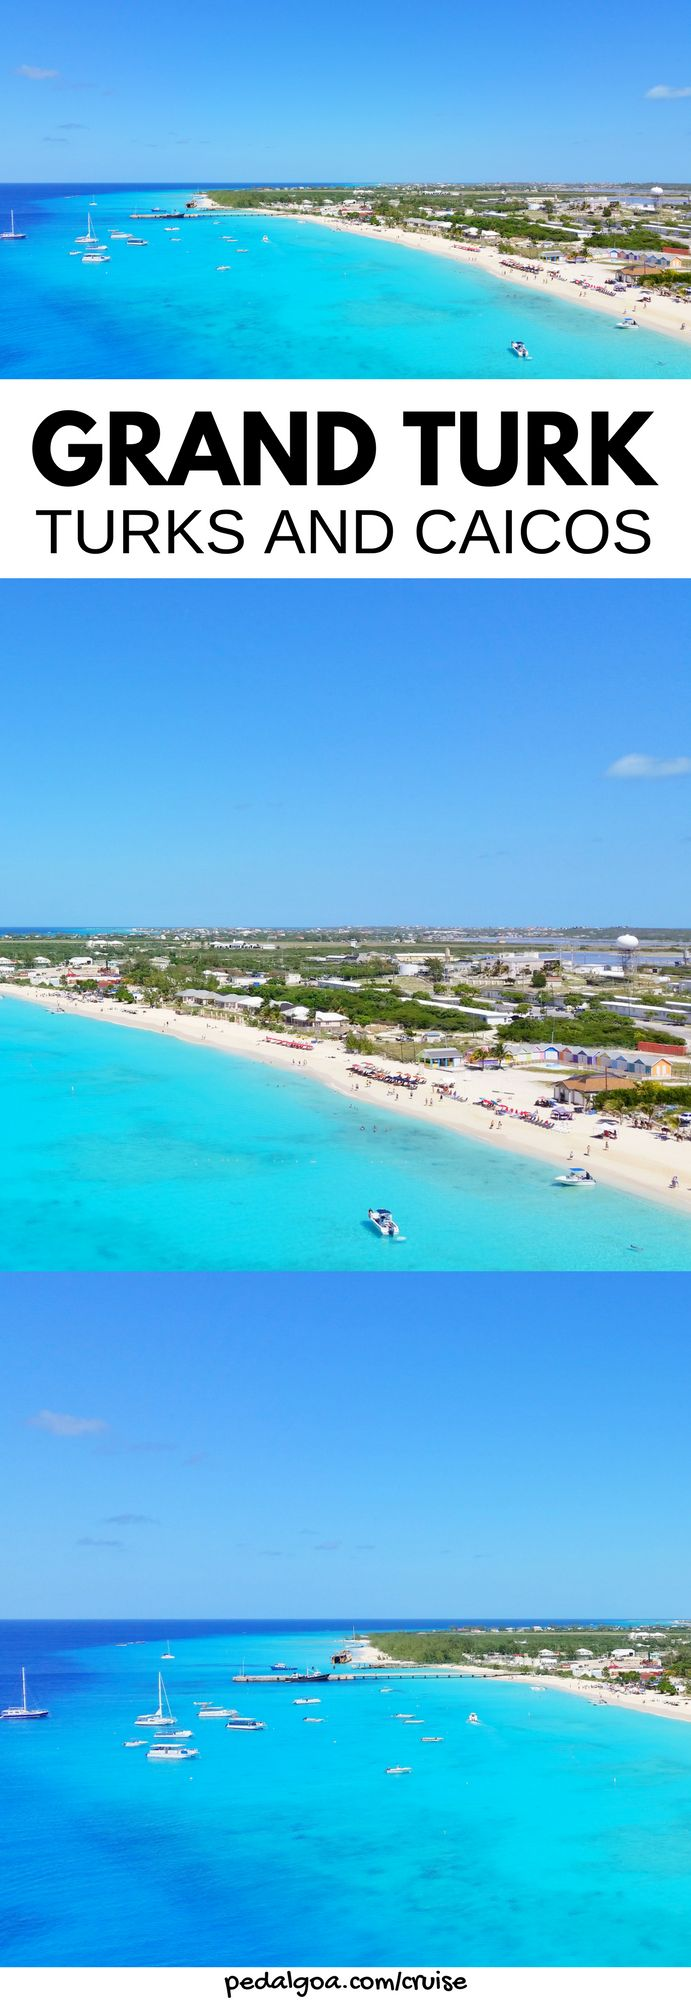 Caribbean weddings grand turk - Turks And Caicos Cruise Things To Do At Grand Turk Cruise Port Caribbean Cruise